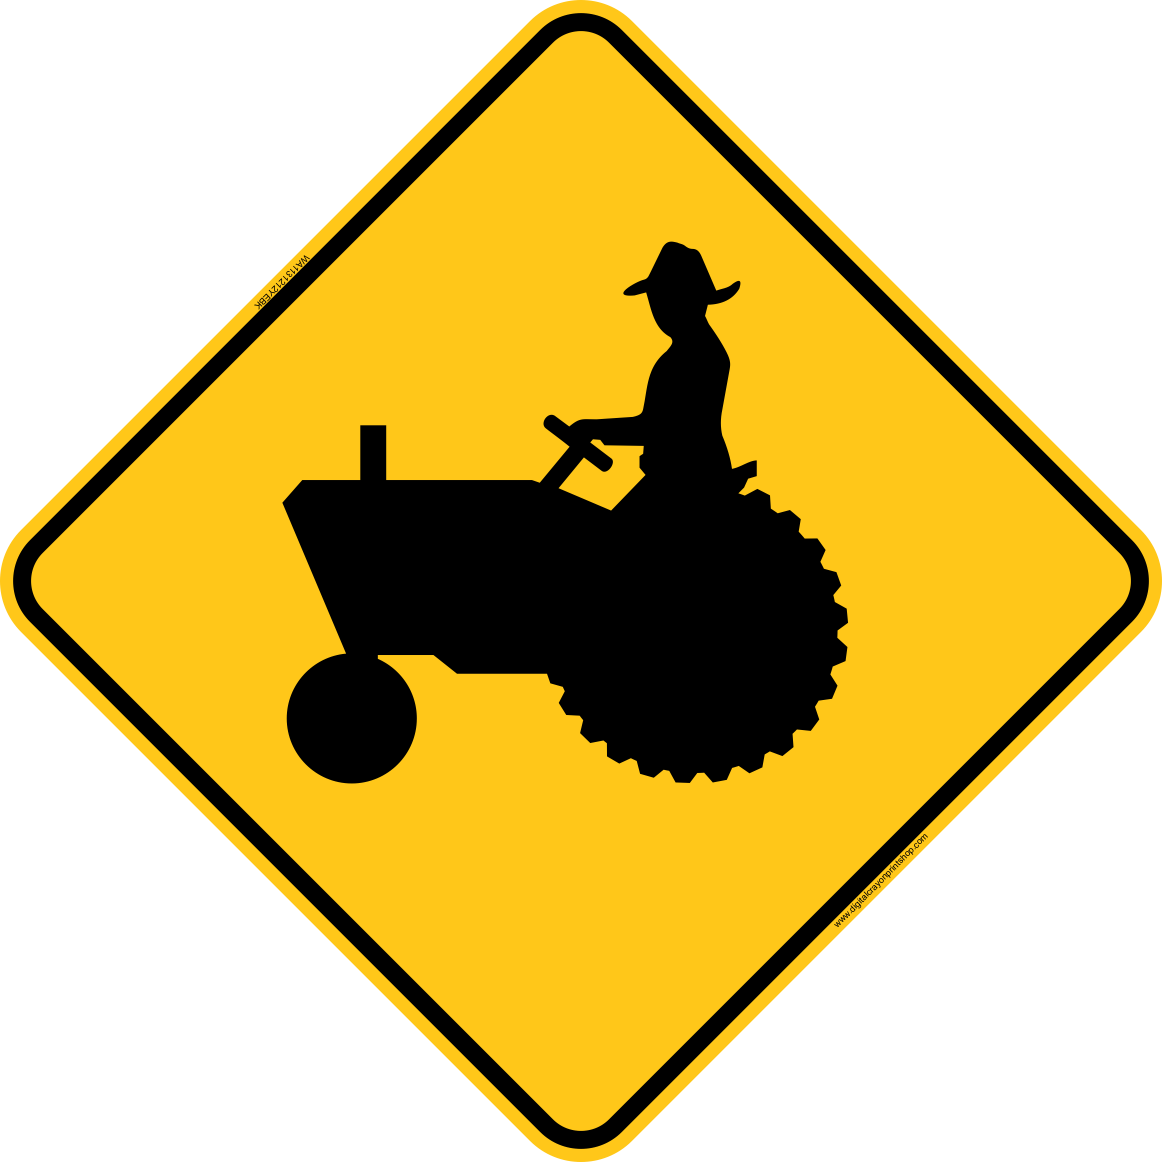 1162x1162 Tractor Crossing Icon Warning Trail Sign Digital Crayon